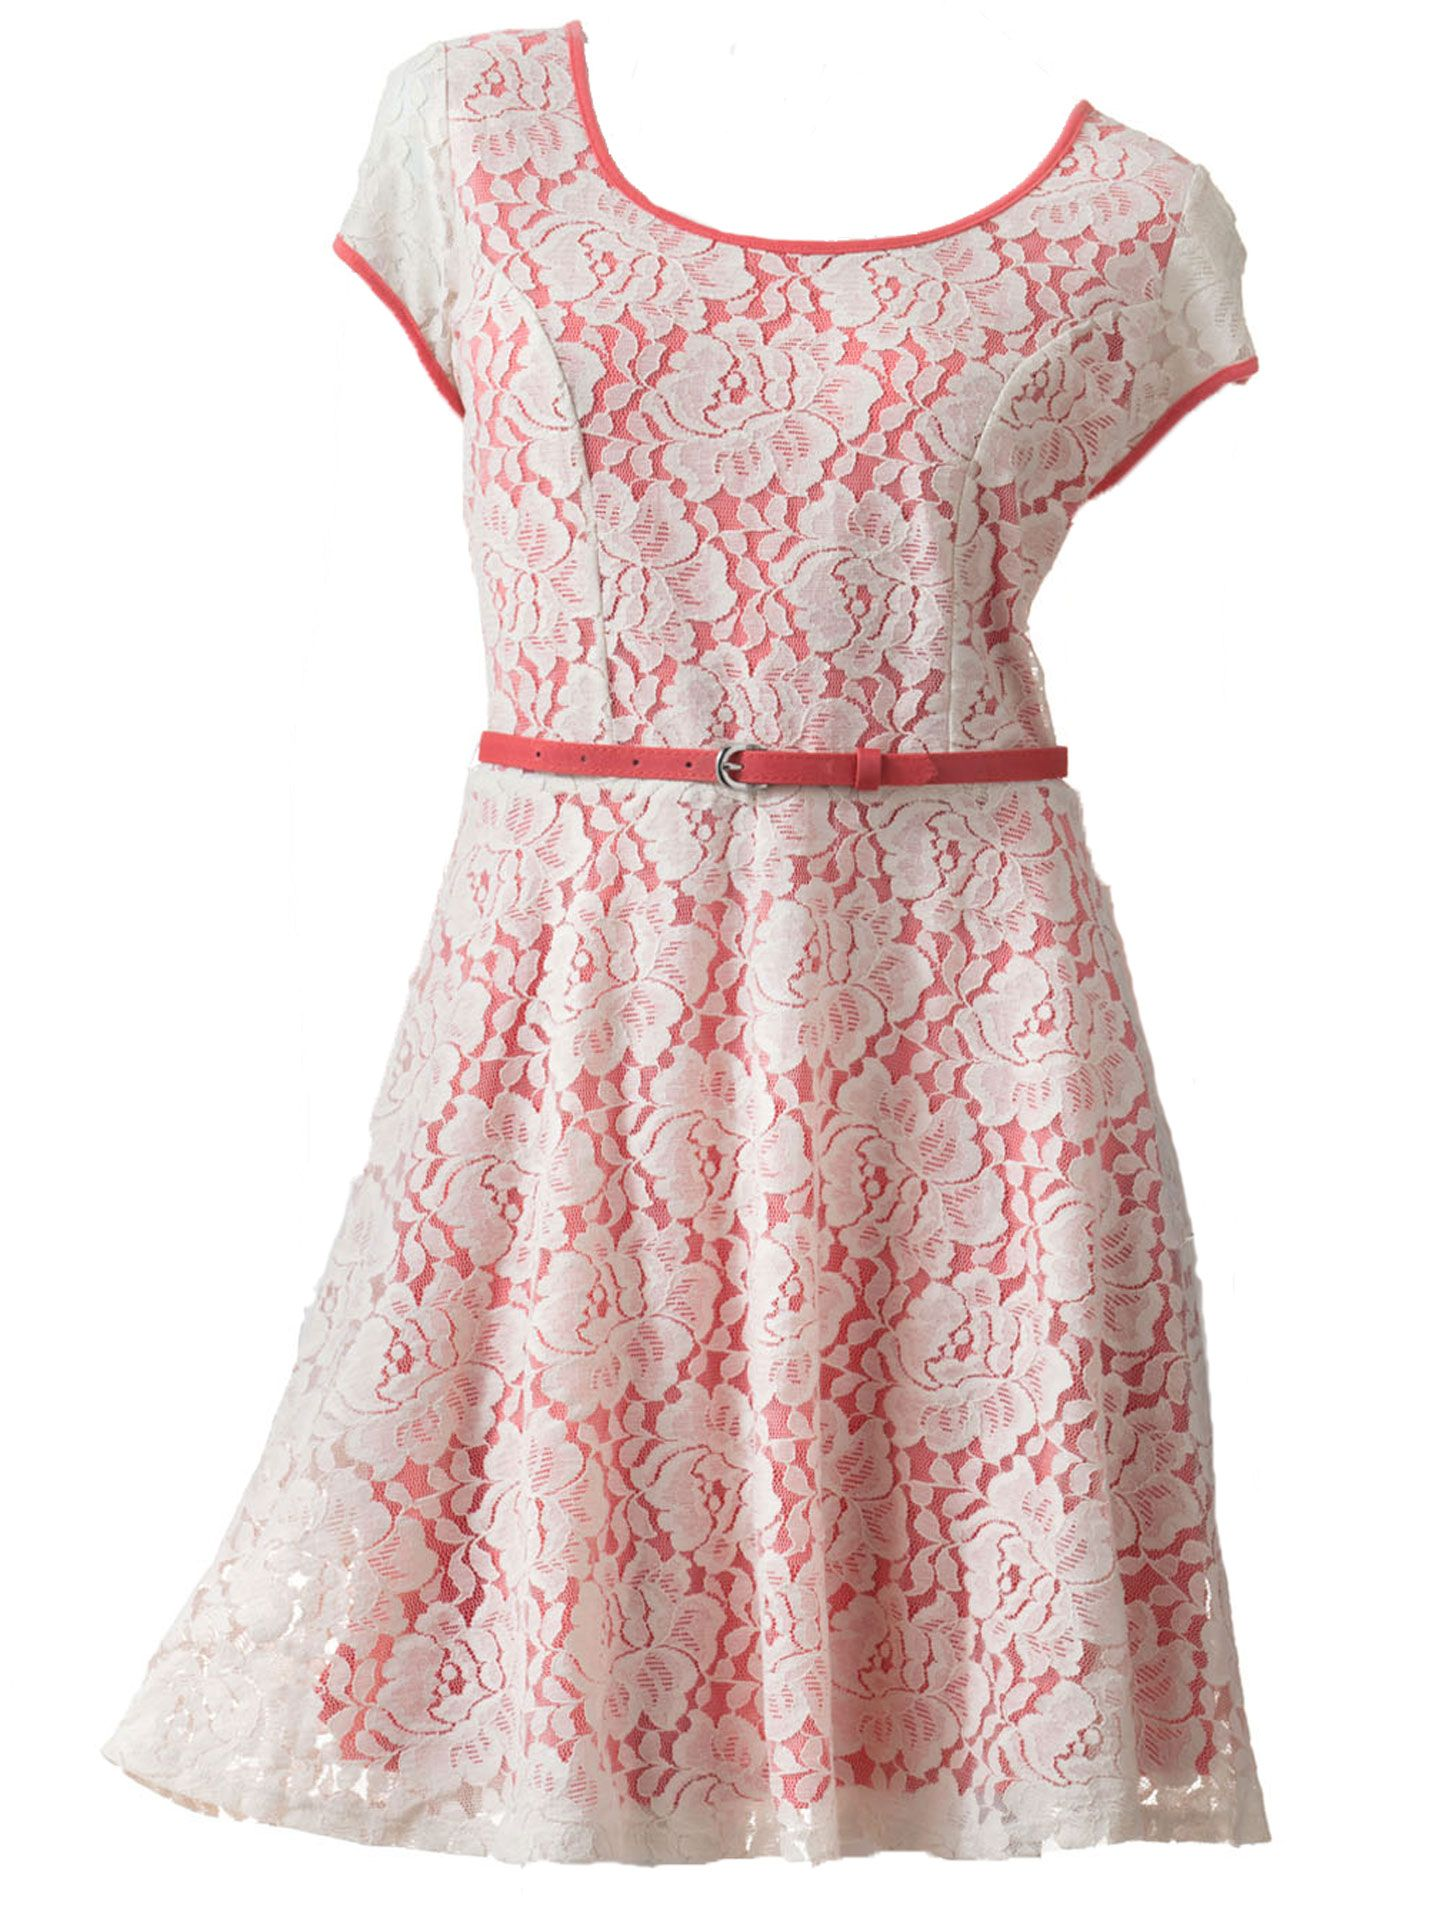 50 Summer Dresses (Under $50!) | Lace, Flare and Lace dresses